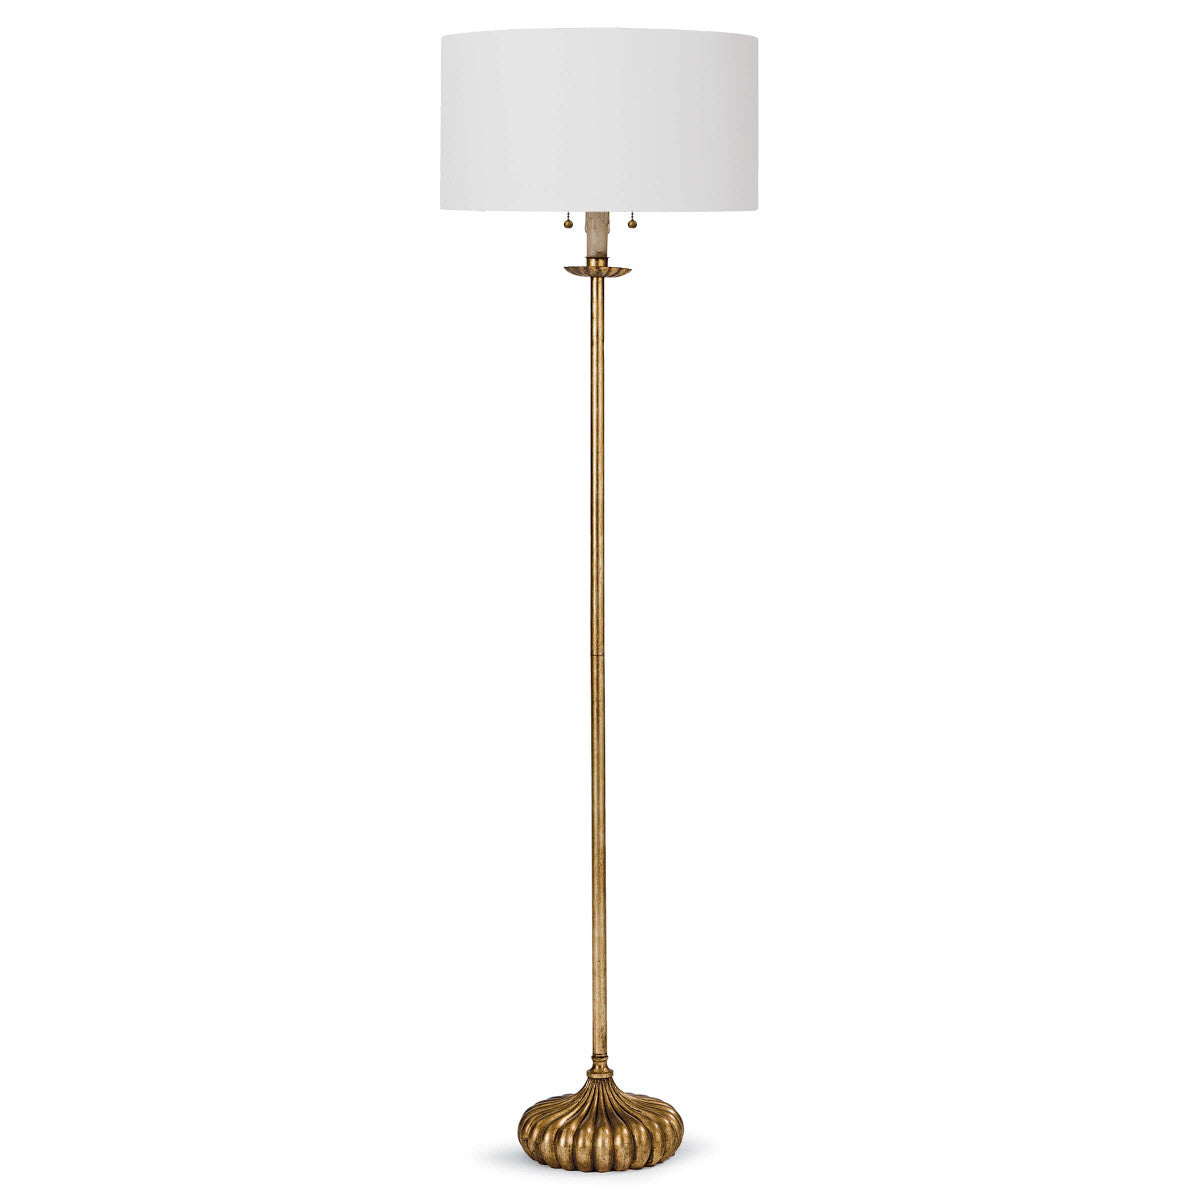 Clove Stem Floor Lamp in Antique Gold Leaf design by Regina Andrew